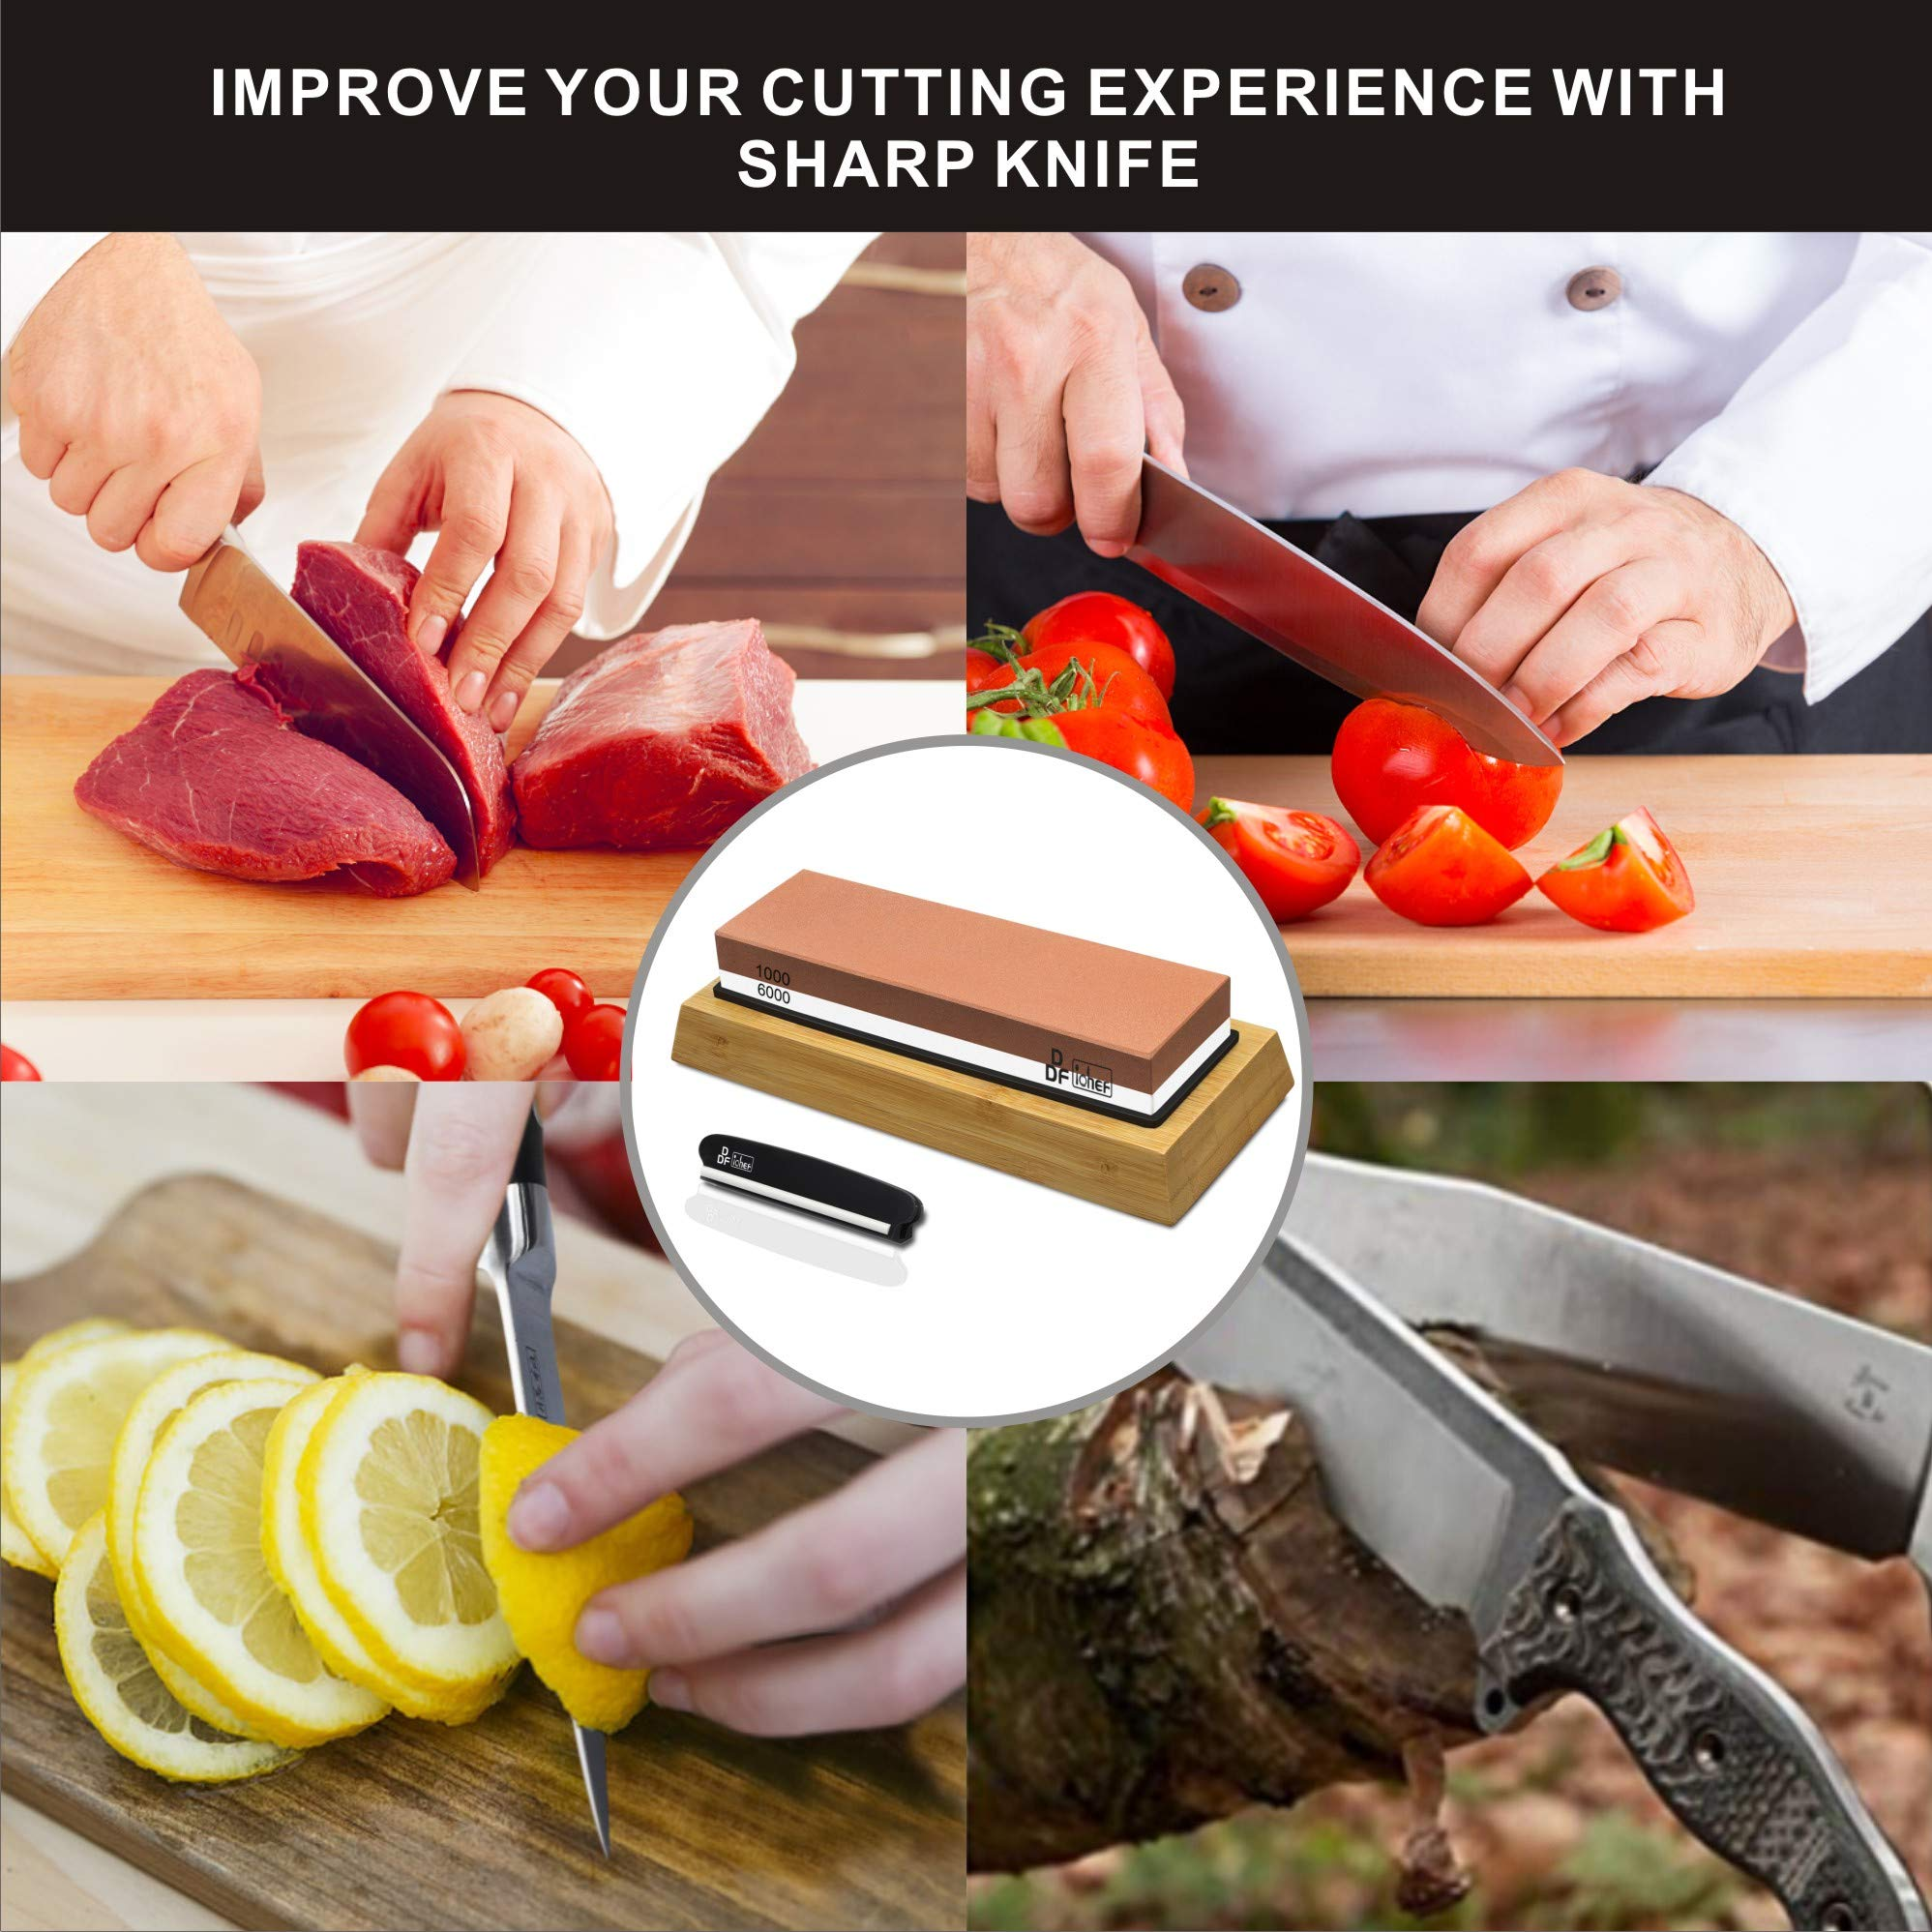 Knife Sharpening Stone, Whetstone Sharpener 1000/6000 2 Sided Grit Non-Slip Bamboo and Silicon Base Angle Guide for Chef Knife,Kitchen Knife,Hunting Knife by DDF iohEF (Image #6)